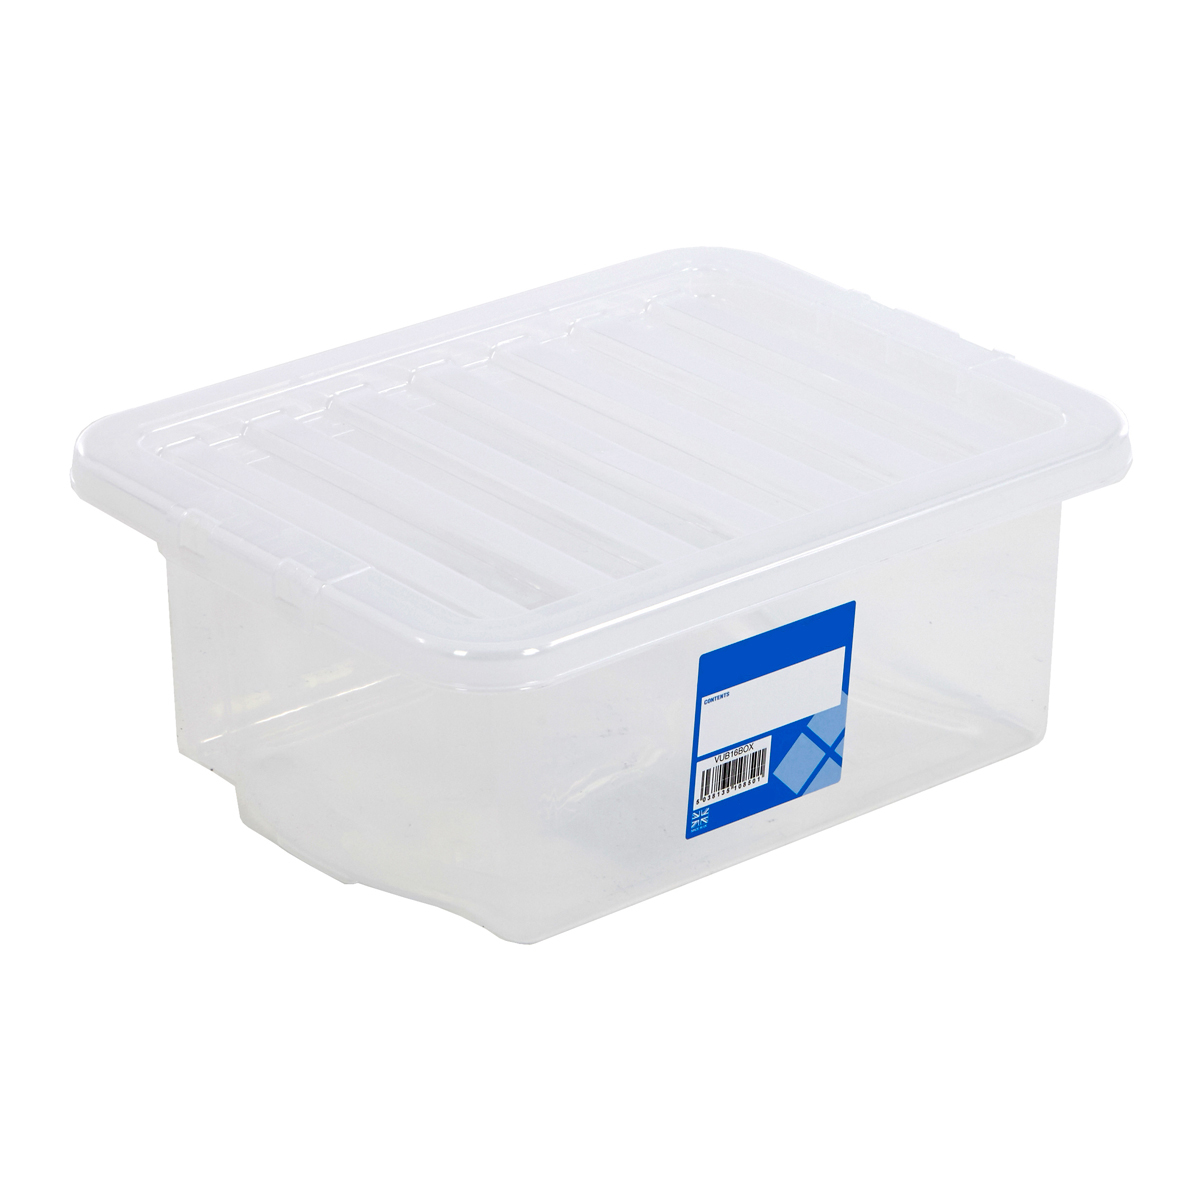 16 litre plastic storage boxes with lids container multi packs home office box ebay. Black Bedroom Furniture Sets. Home Design Ideas